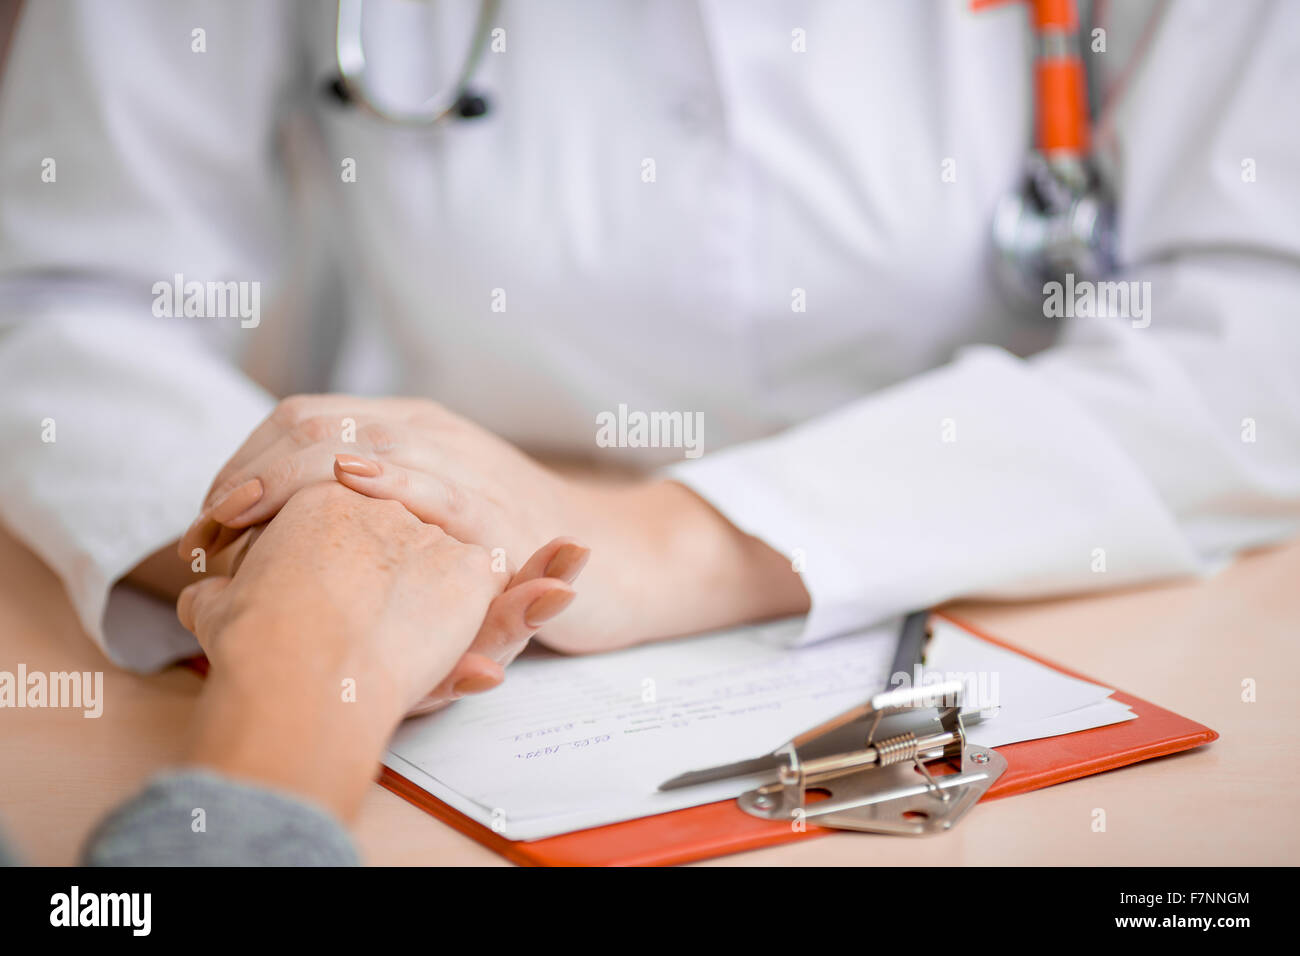 Doctor consoling or supporting patient Stock Photo